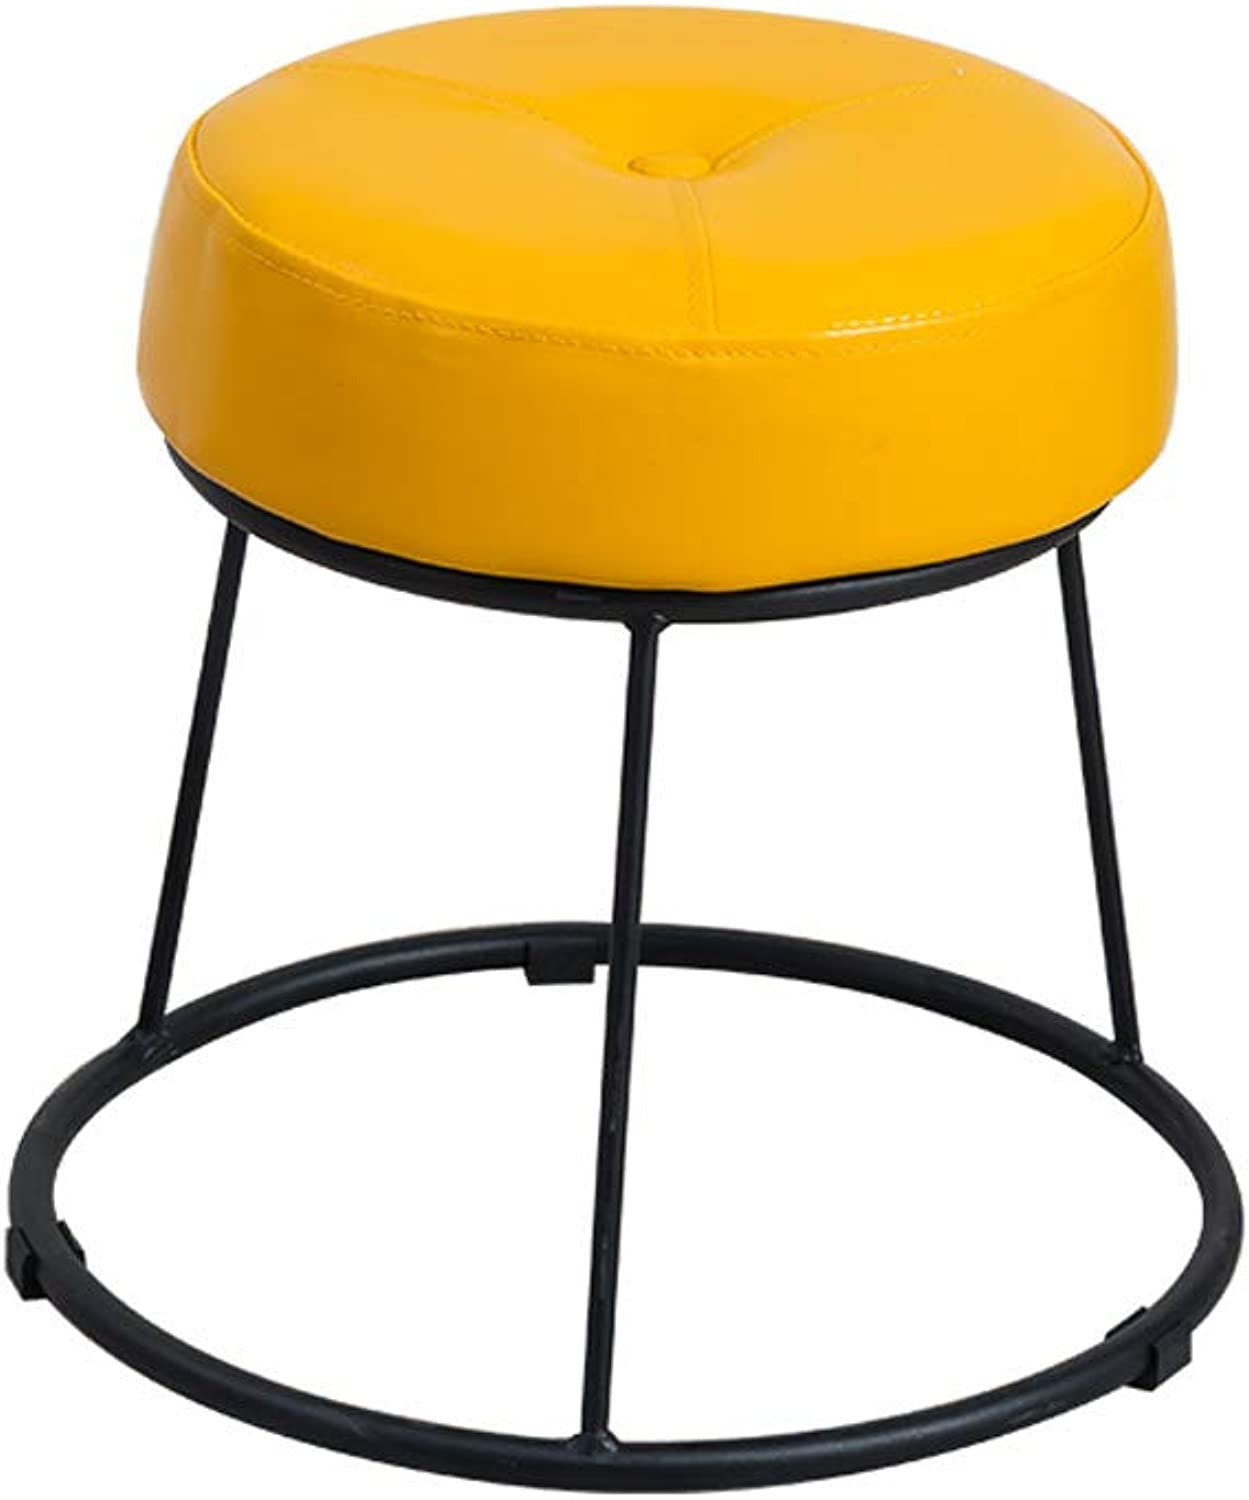 Simple Stool Wrought Iron Metal Upholstered Footstool Dining Table Stool Multi-Purpose for Living Room Bedroom Restaurant Maximum Load Capacity 150kg (31.5cm×36.5cm)